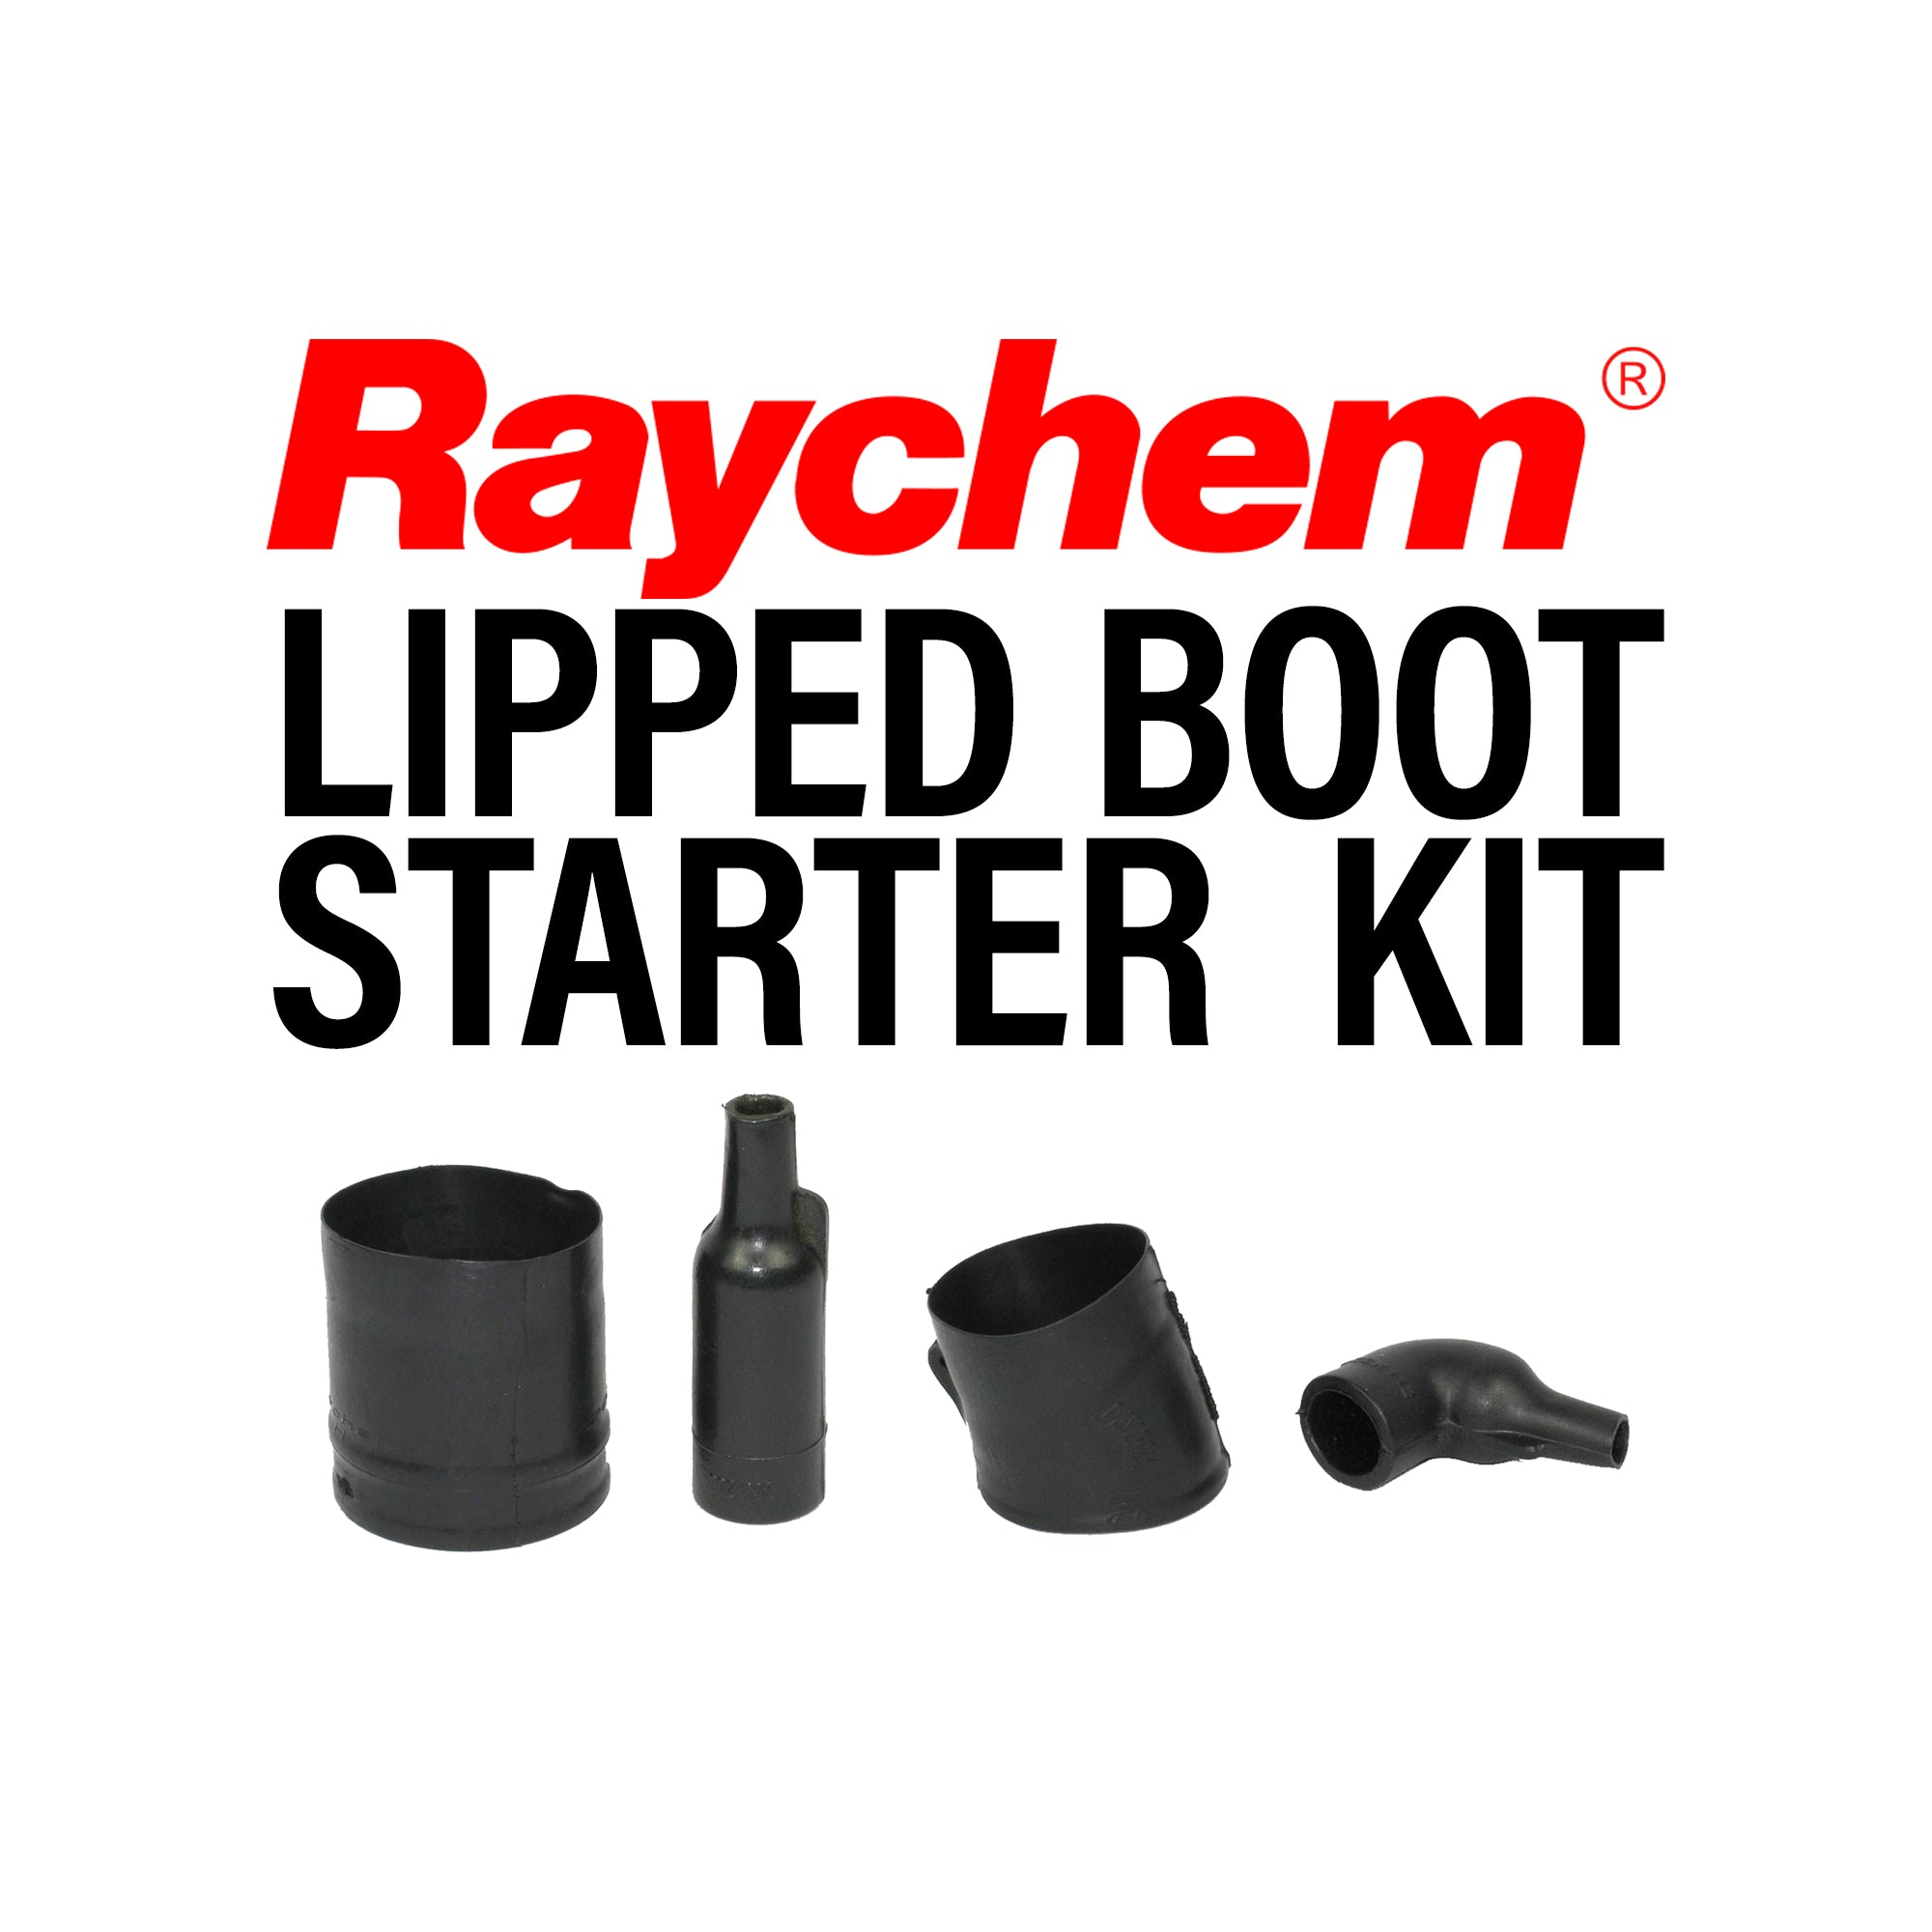 Race Spec Raychem Lipped Boot Starter Kit